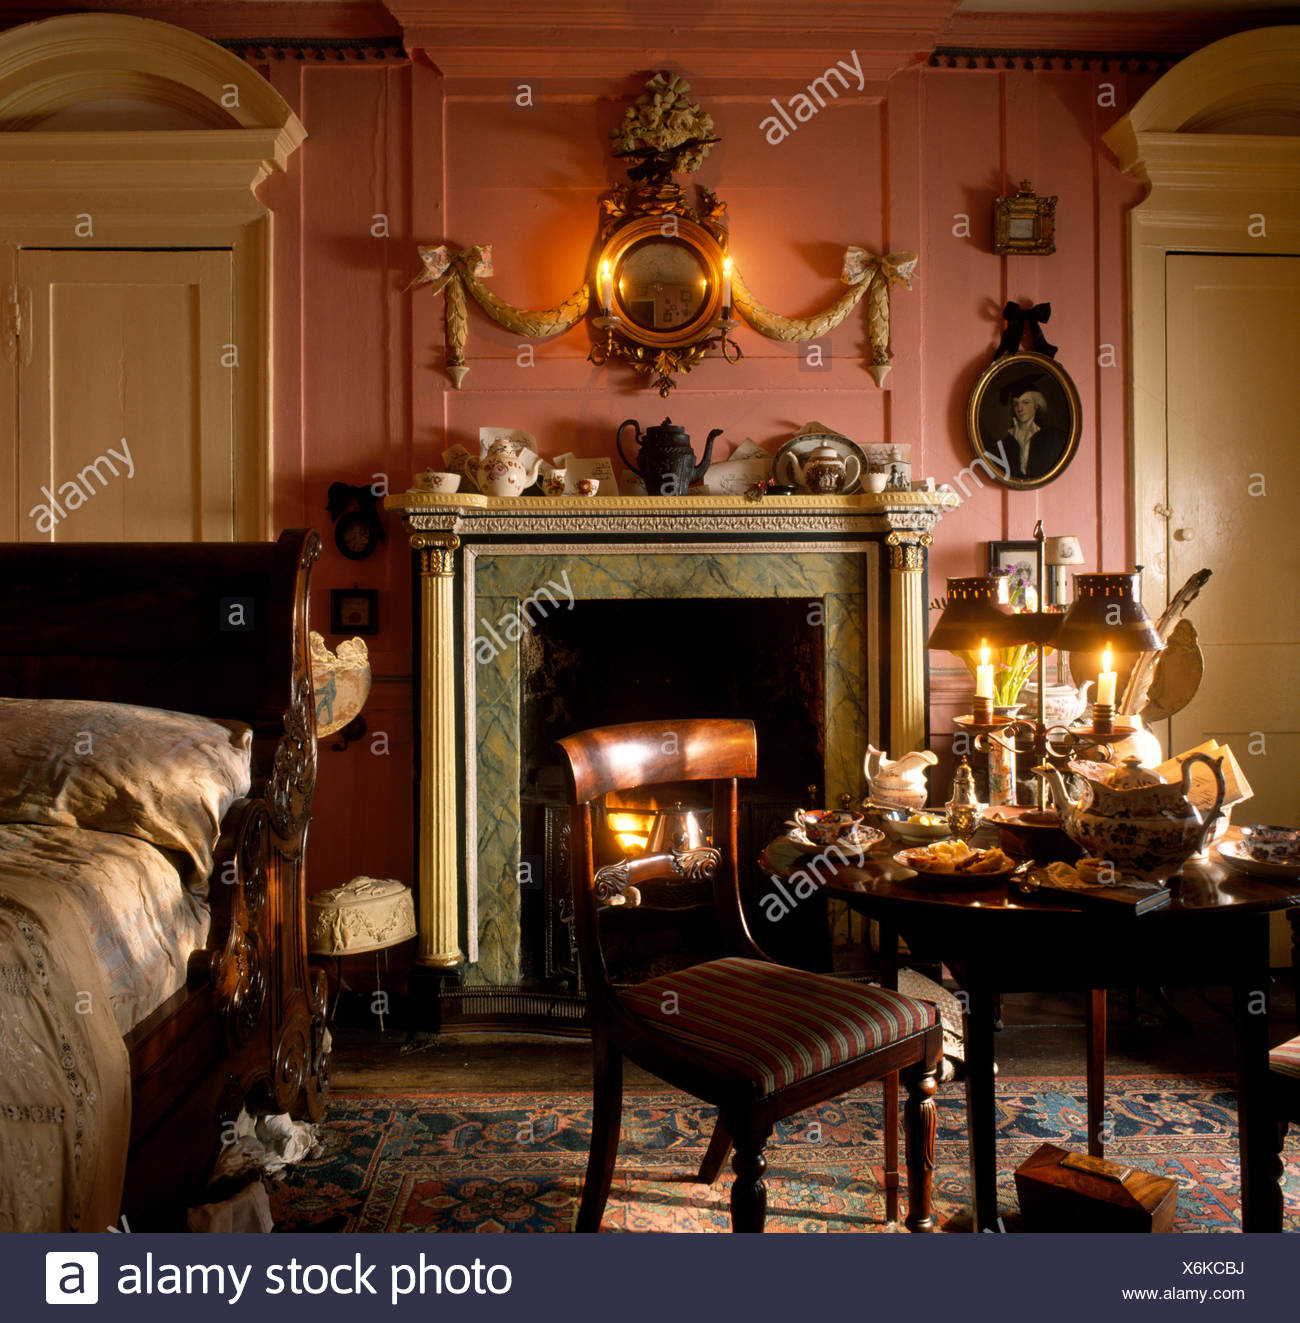 Antique Furniture In A Pink Georgian Bedroom With An Ornate Gilt Mirror  Above The Fireplace